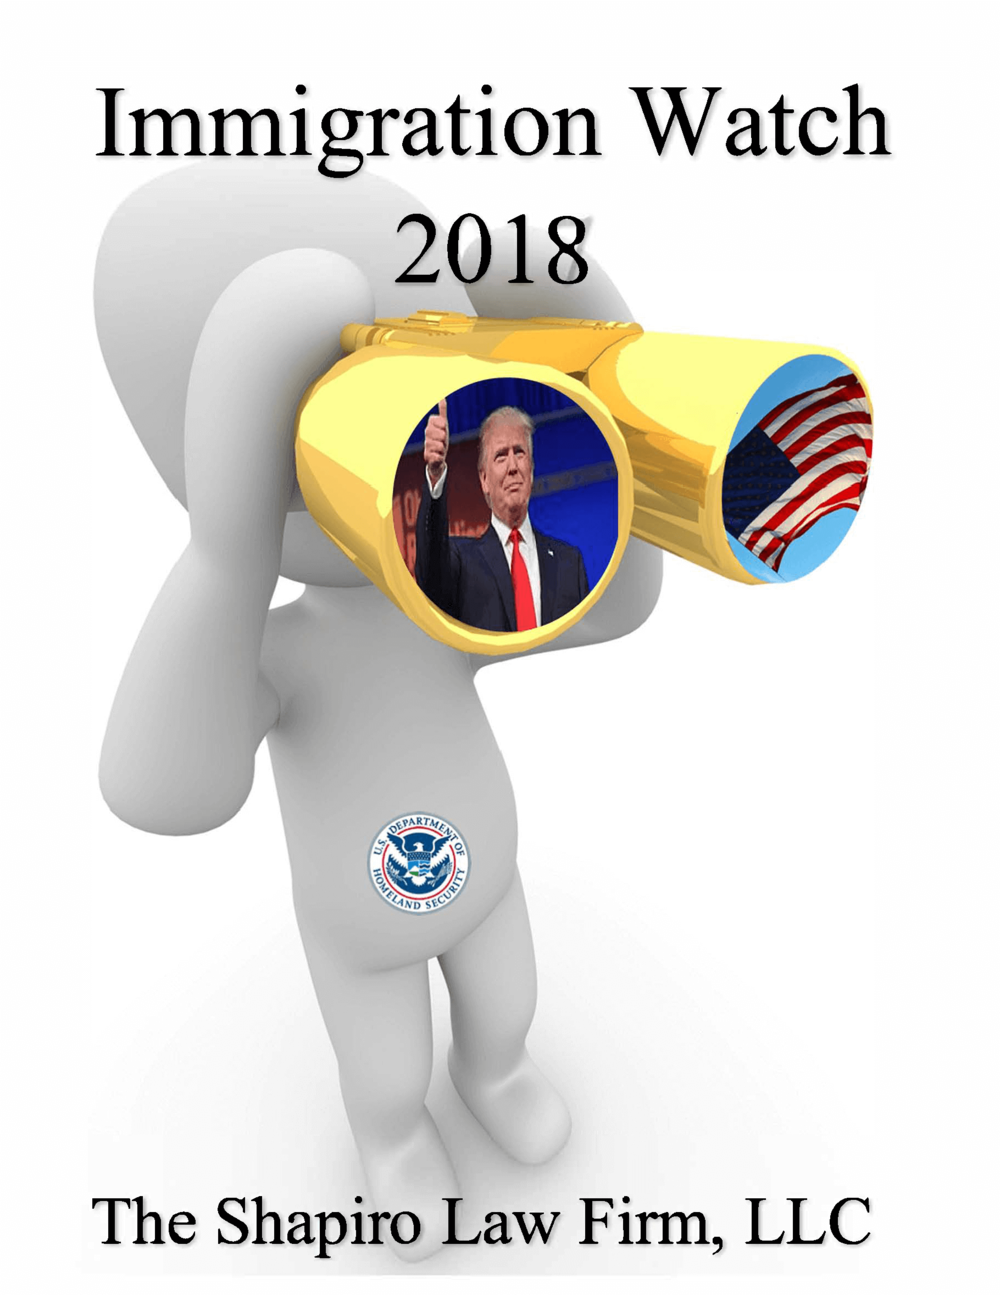 #ImmigrationWatch2018